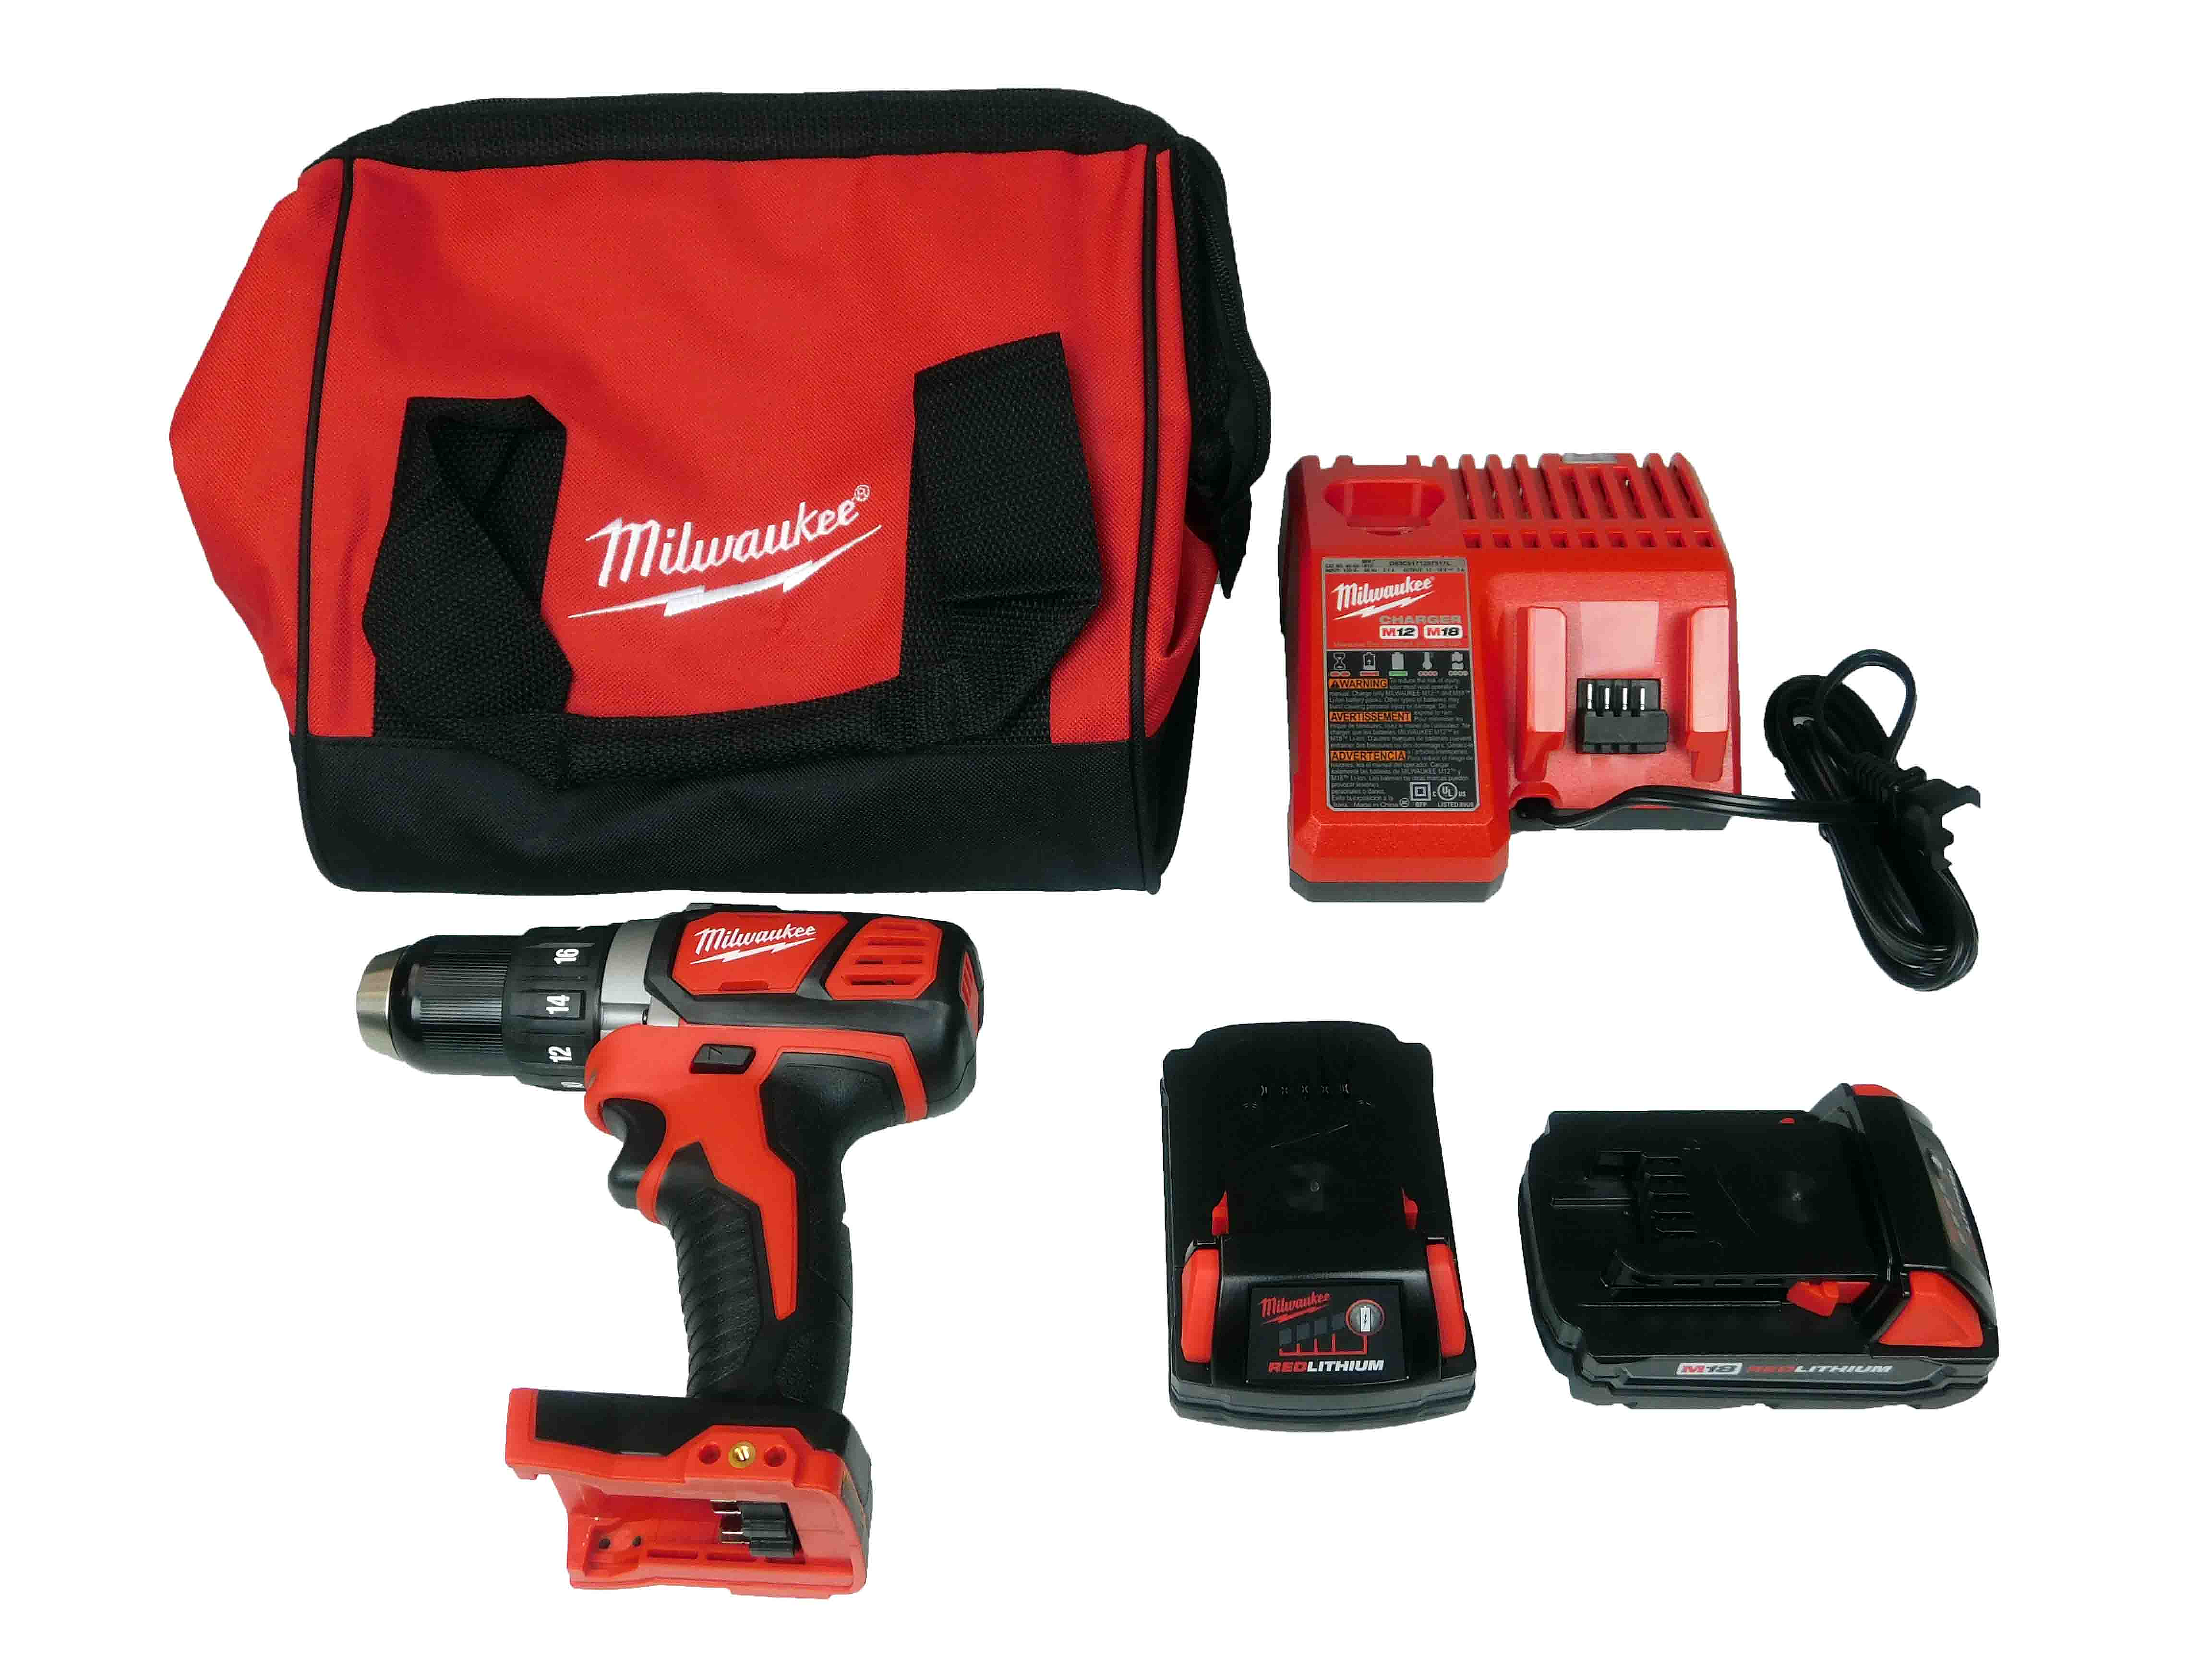 Milwaukee-2606-22CT-M18-Compact-1-2inch-Drill-Driver-Kit-image-1